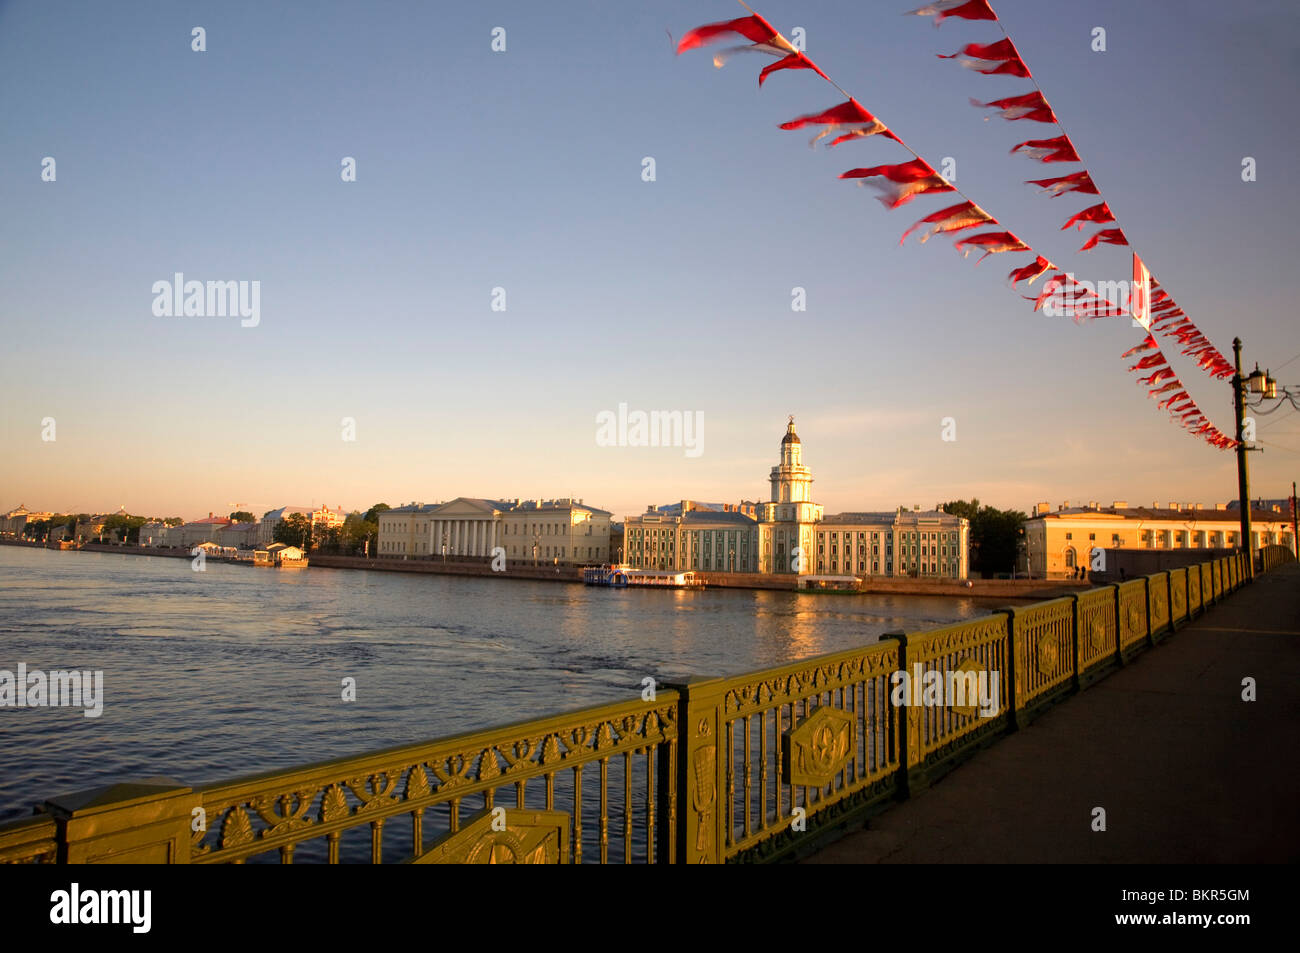 Russia, St.Petersburg; Across the Neva River early morning with the Kunskamera visible and flags in the foreground - Stock Image